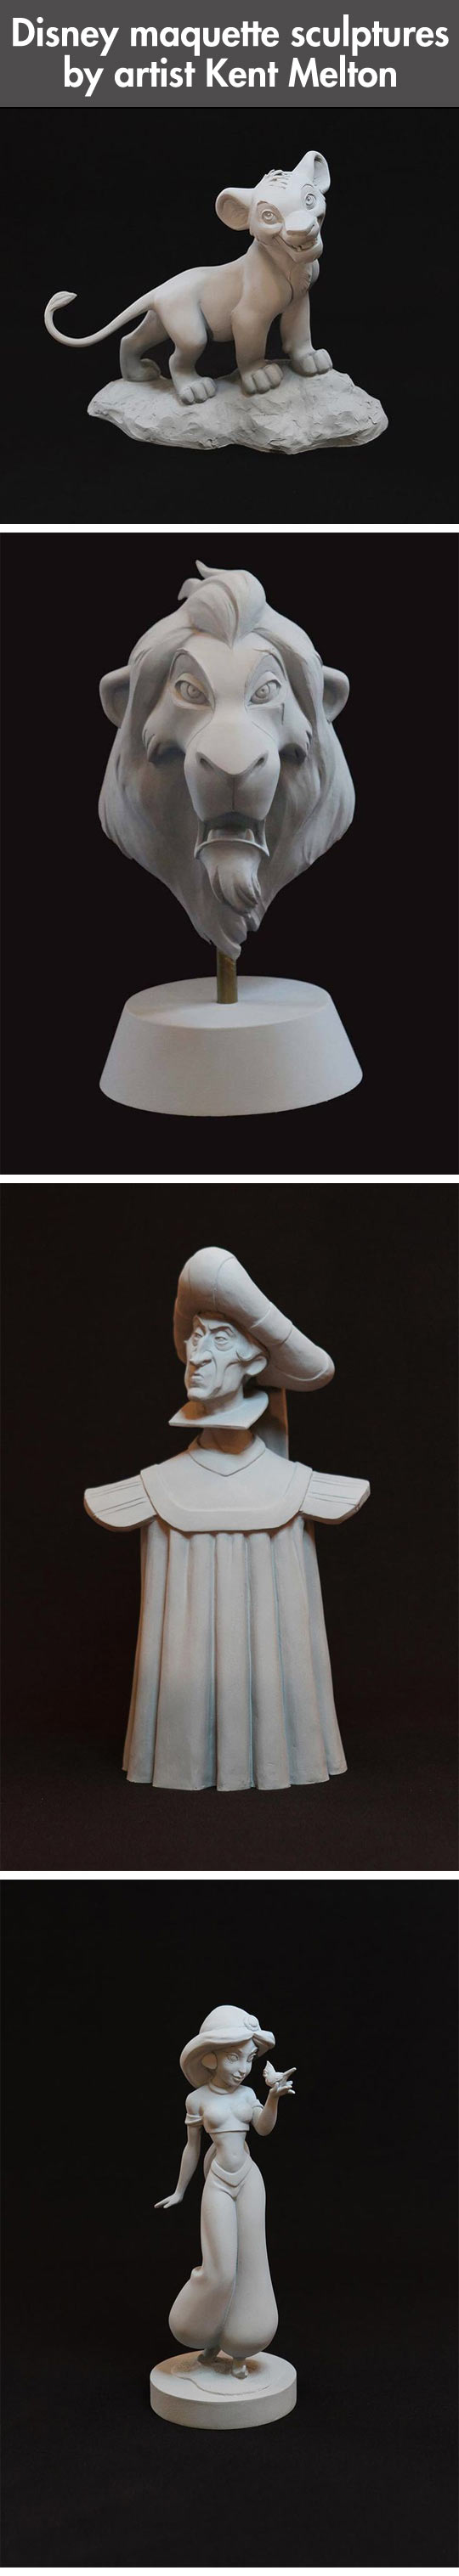 cool-Disney-maquette-sculptures